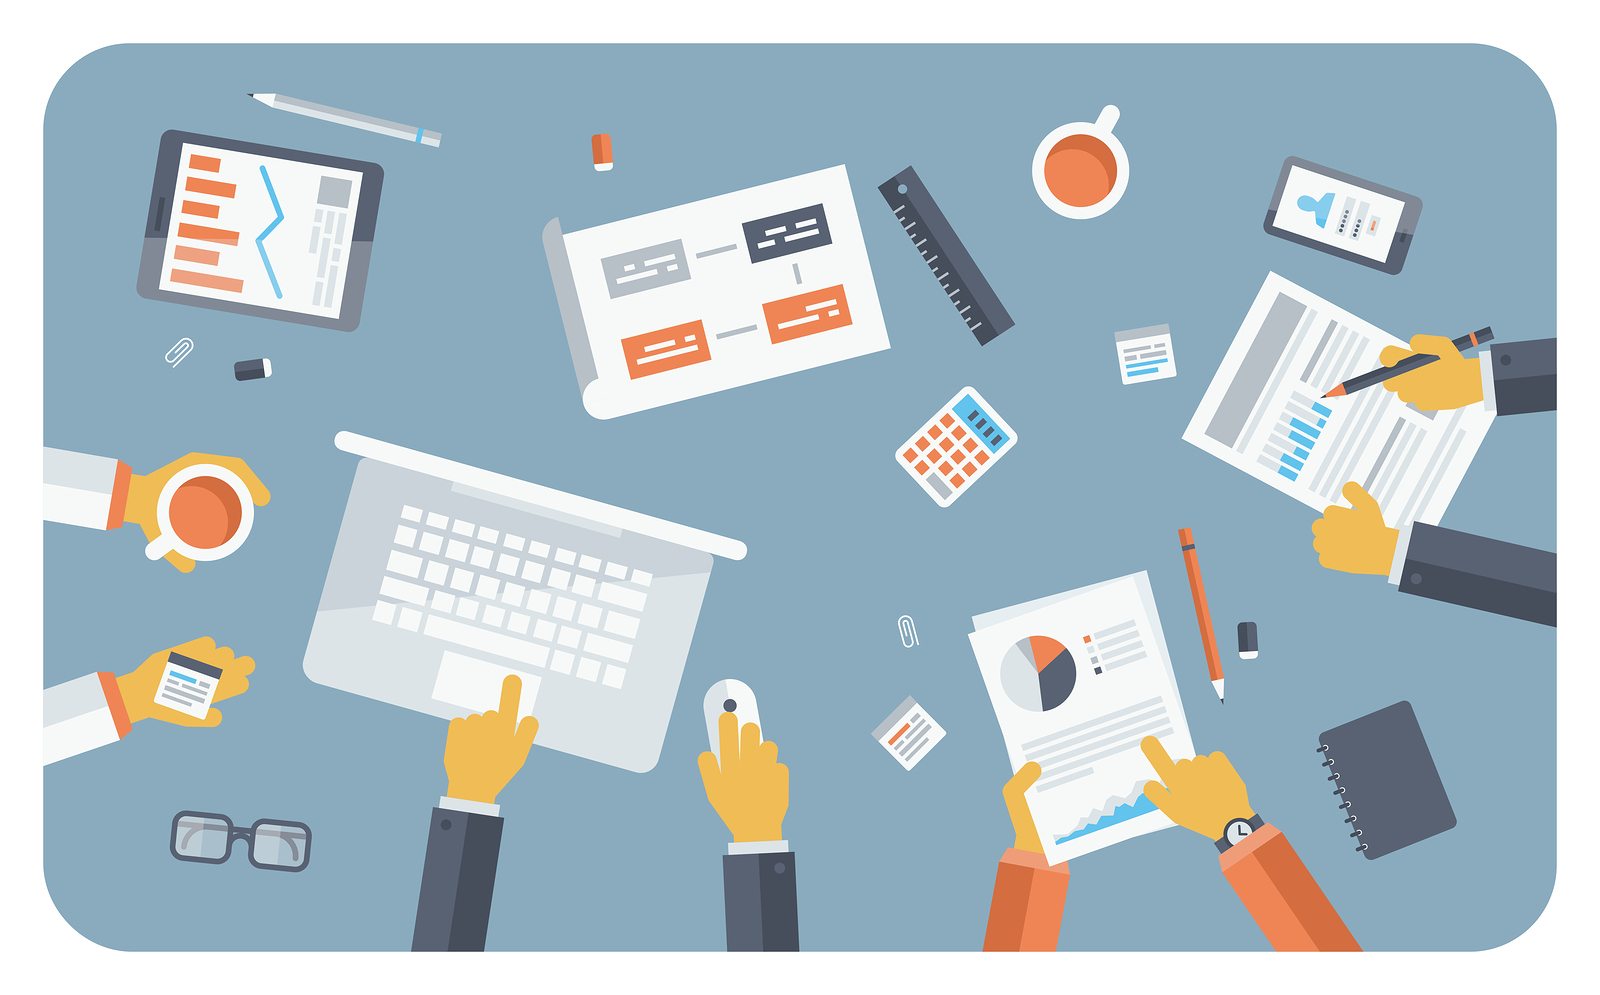 Flat design style modern vector illustration concept of teamwork consulting on briefing small business project presentation group of people planning and brainstorming ideas of company financial strategy.